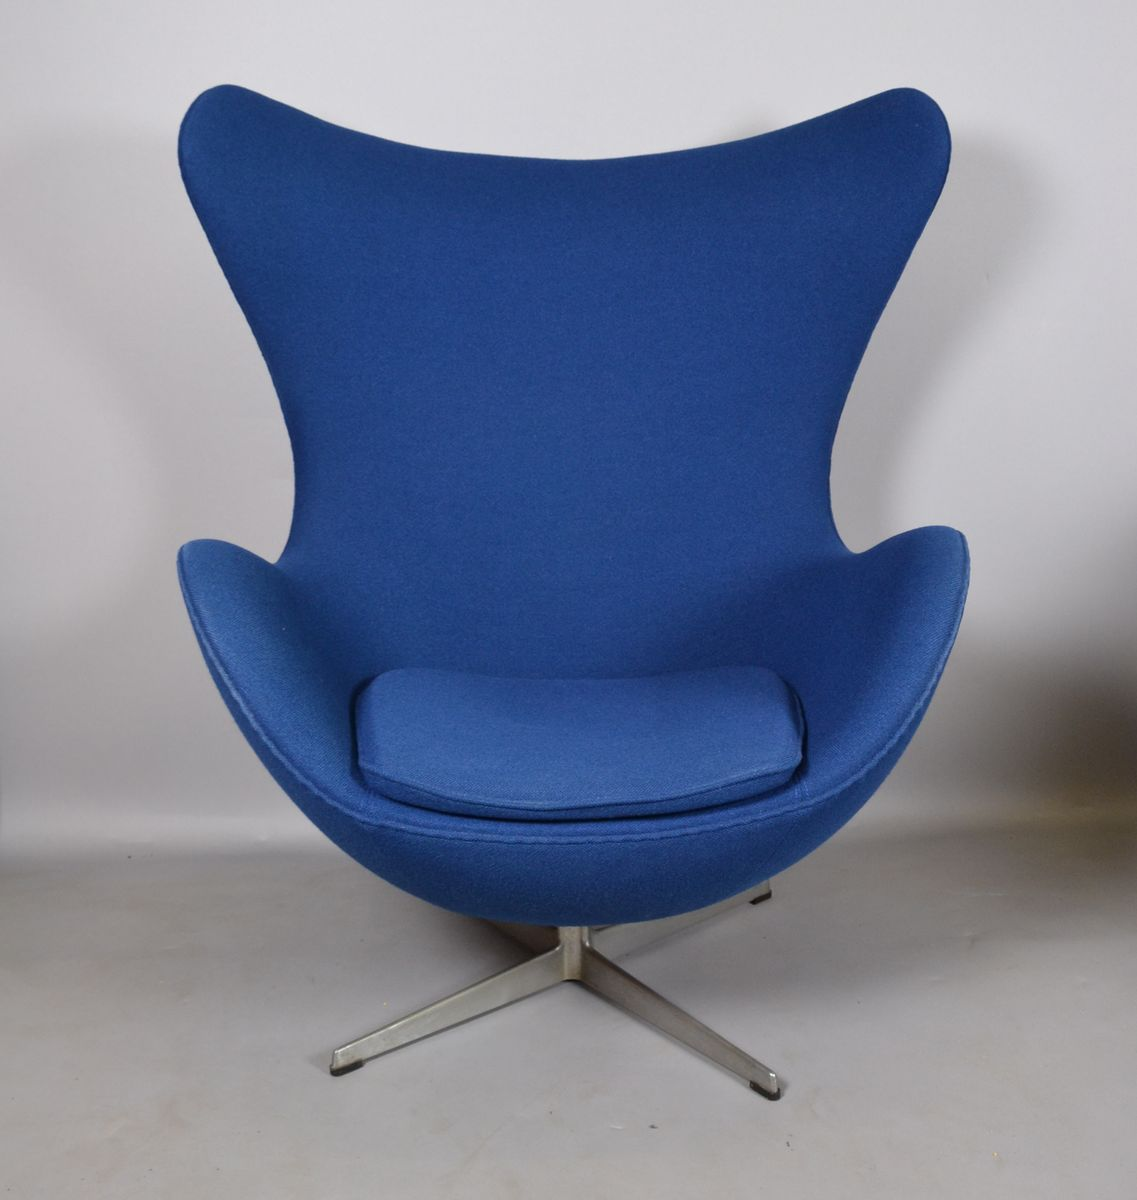 blue egg chair office chairs for back problems fabric by arne jacobsen fritz hansen 1970s